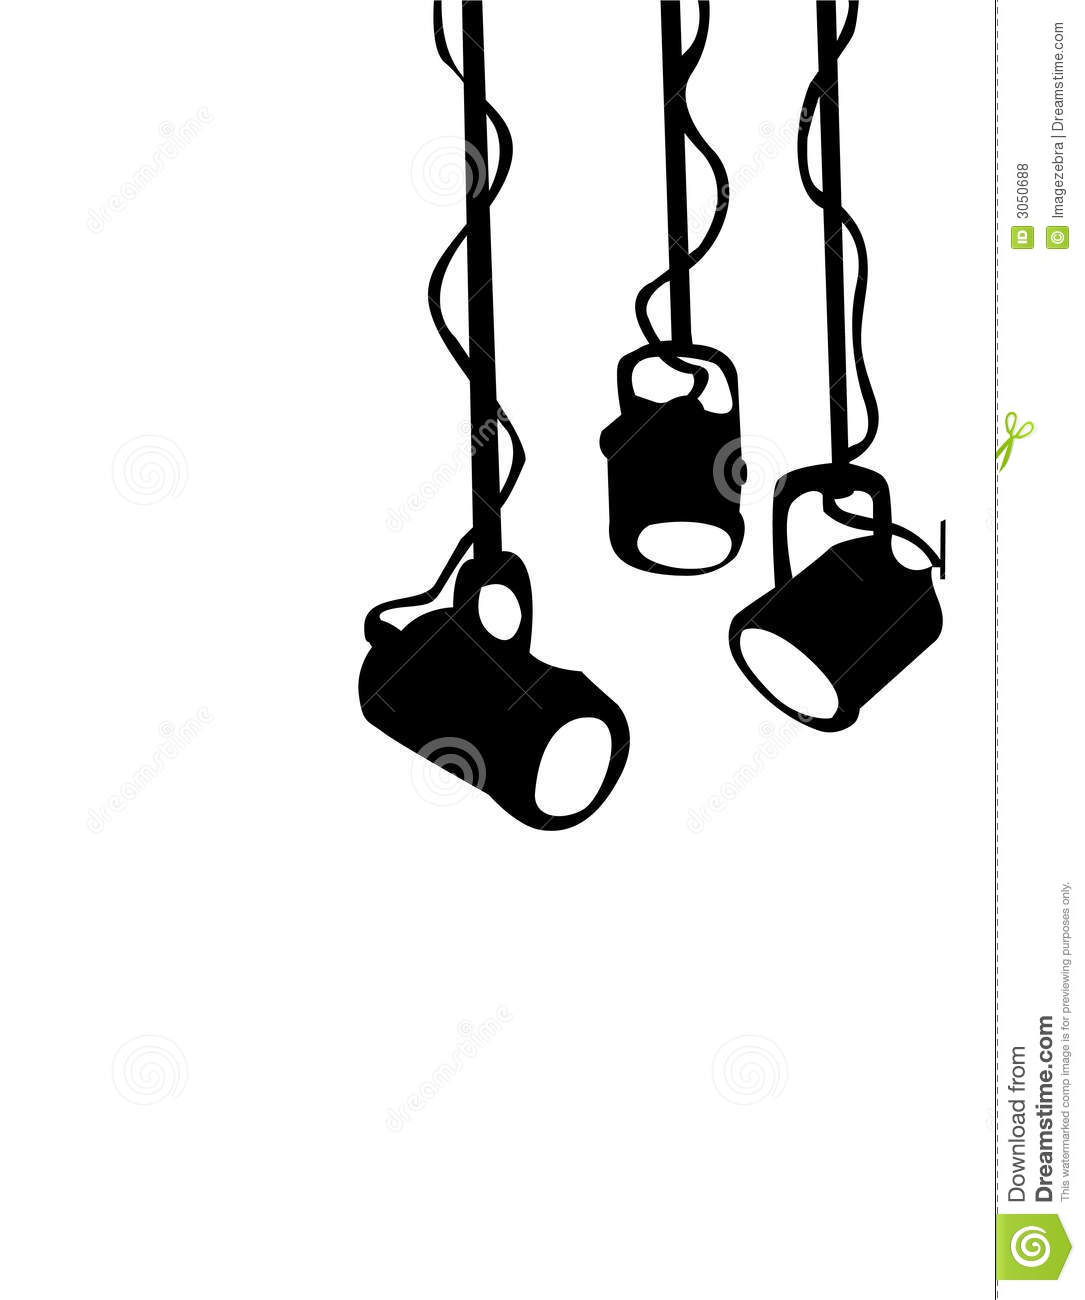 Theater Lights Clipart